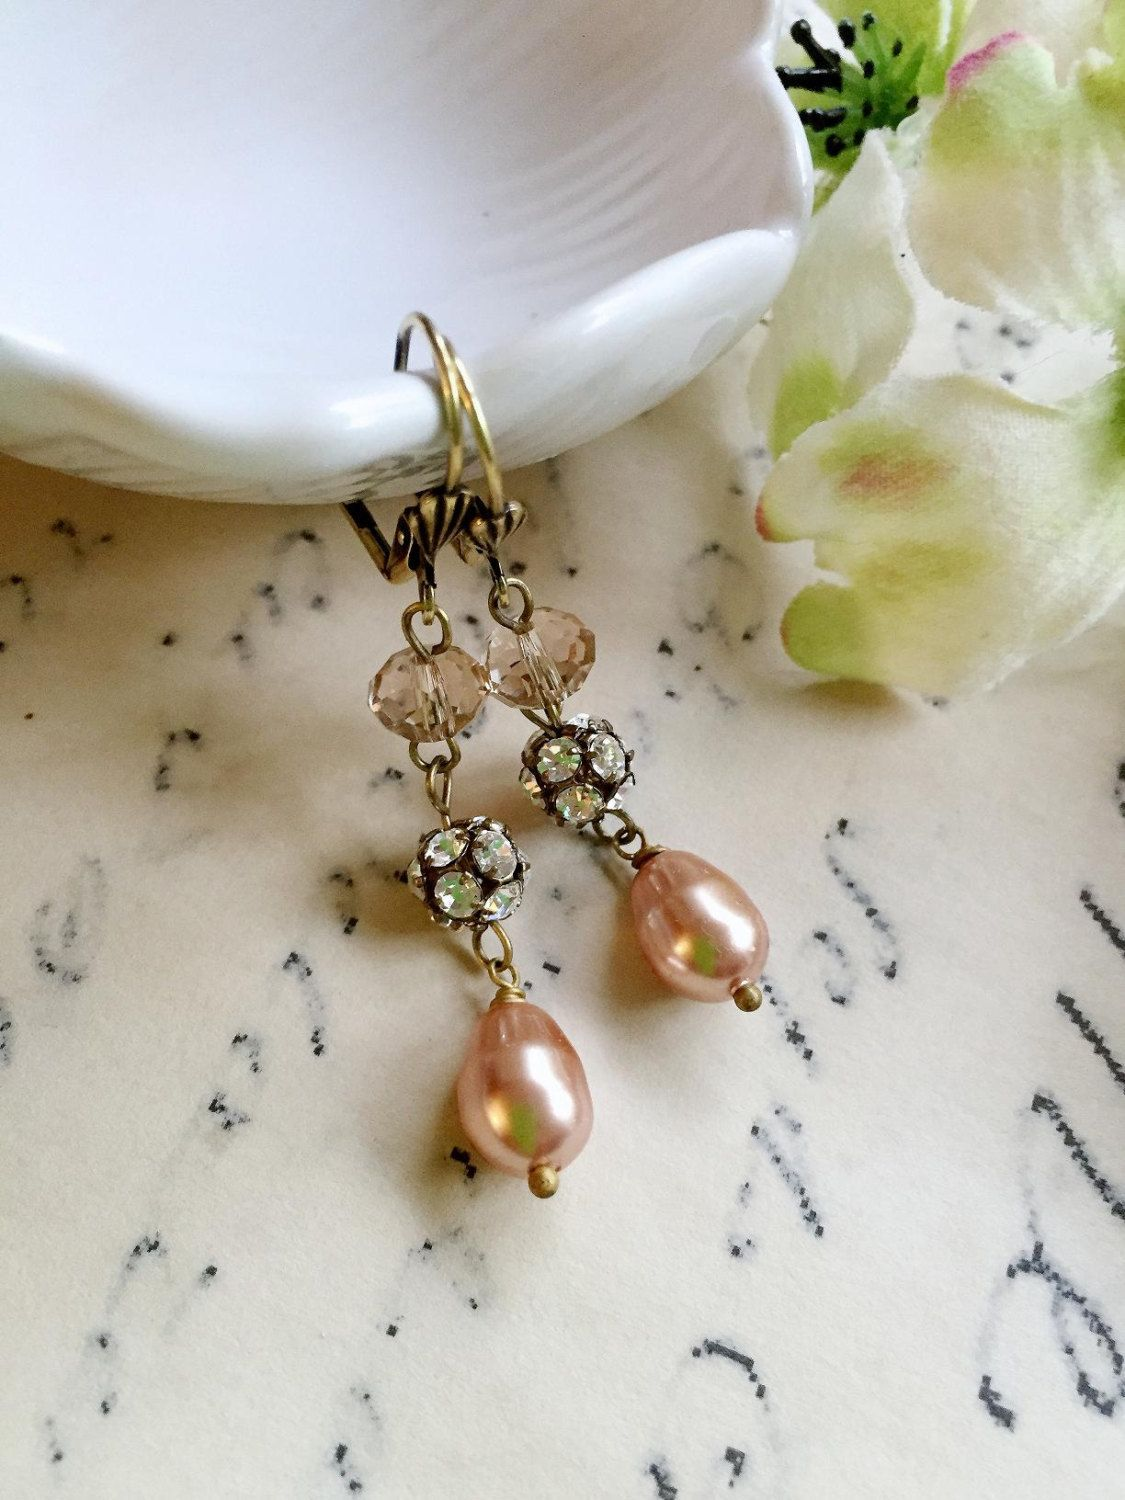 Rose Gold Pearl Earrings Peach Crystal Dangles  Bridesmaid Earrings  Vintage Style By Blueartichokedesigns On Etsy